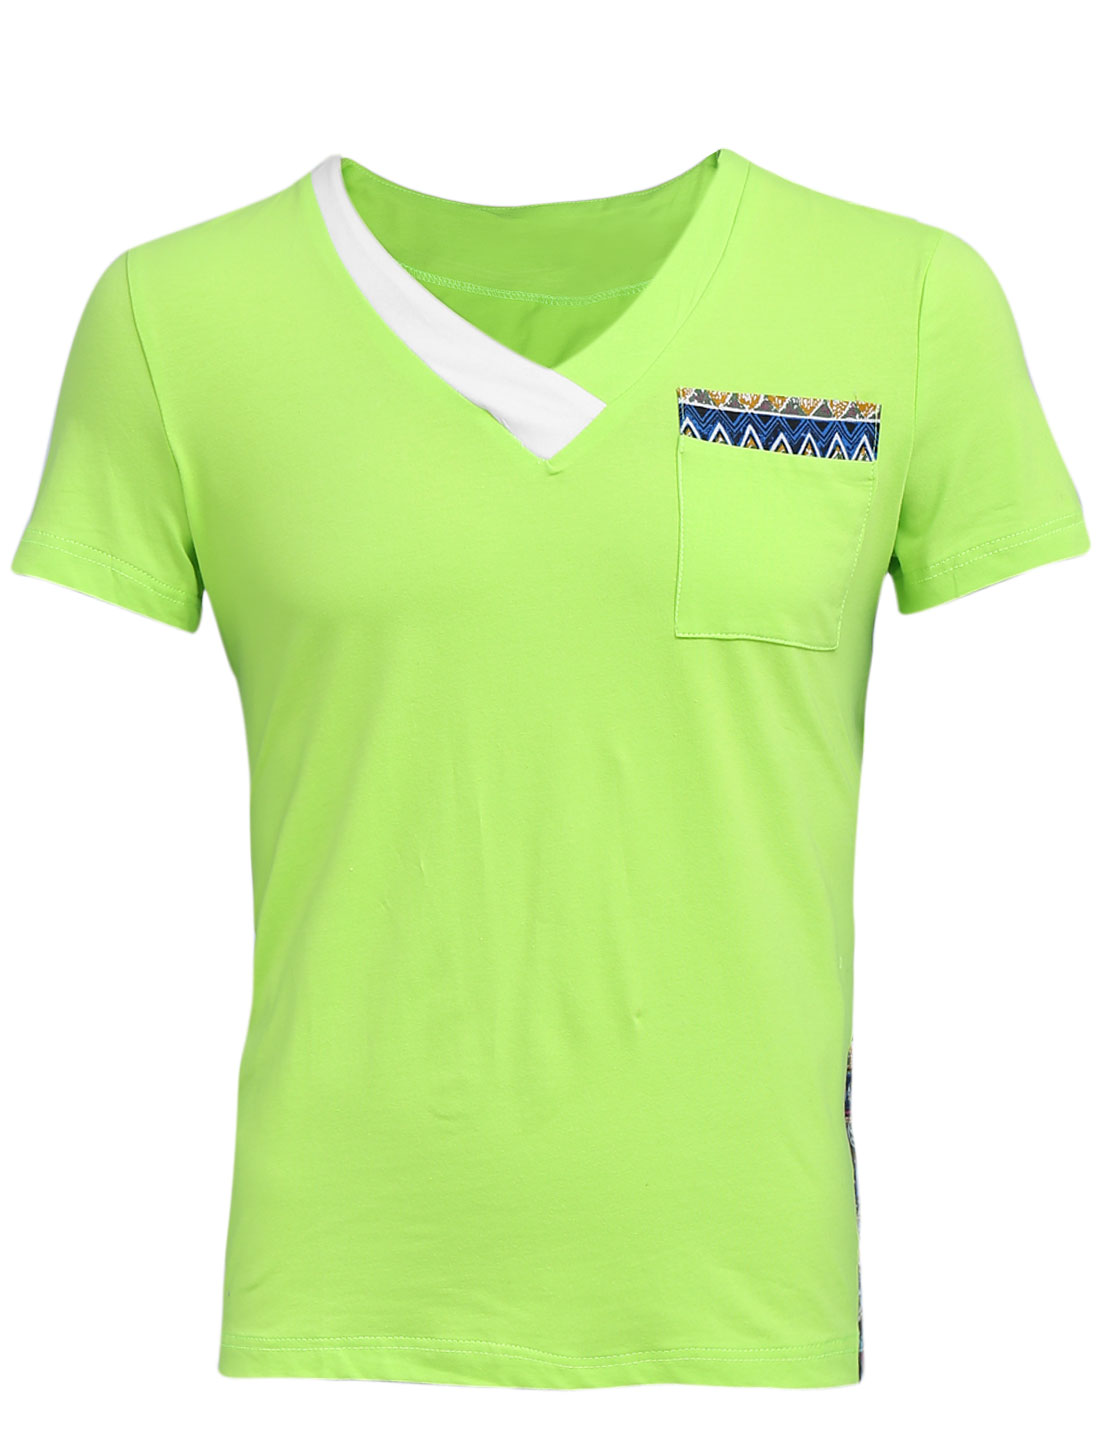 Men Cross V Neck Pullover Panel Slim Fit Tee Shirt Lime Green M